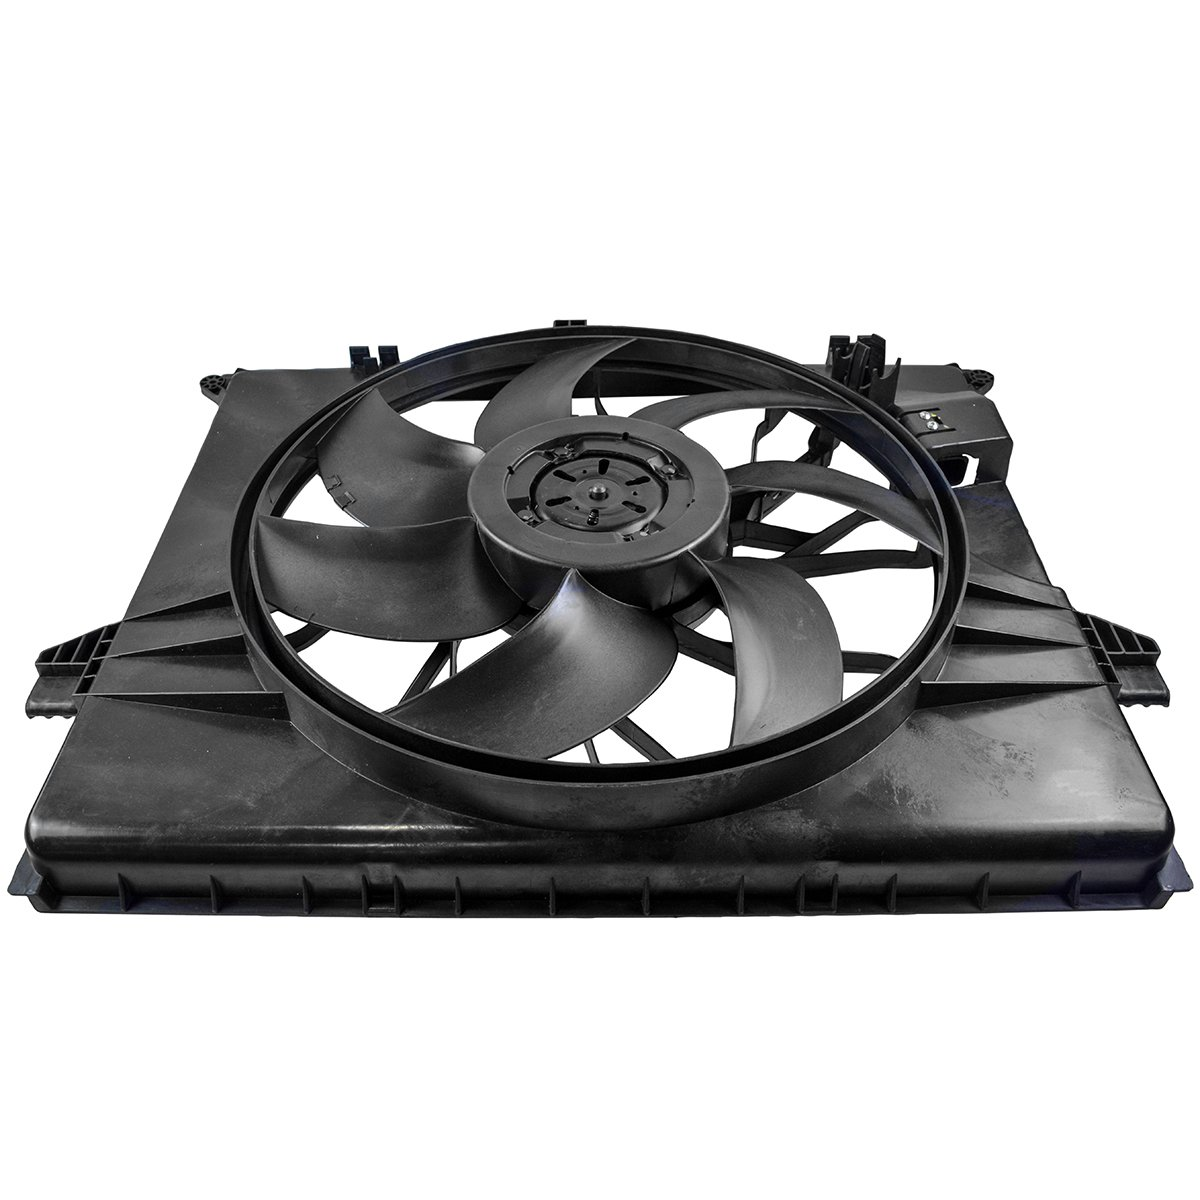 Radiator Cooling Fan Assembly for Mercedes Benz ML350 ML450 ML500 R350 R320 R500